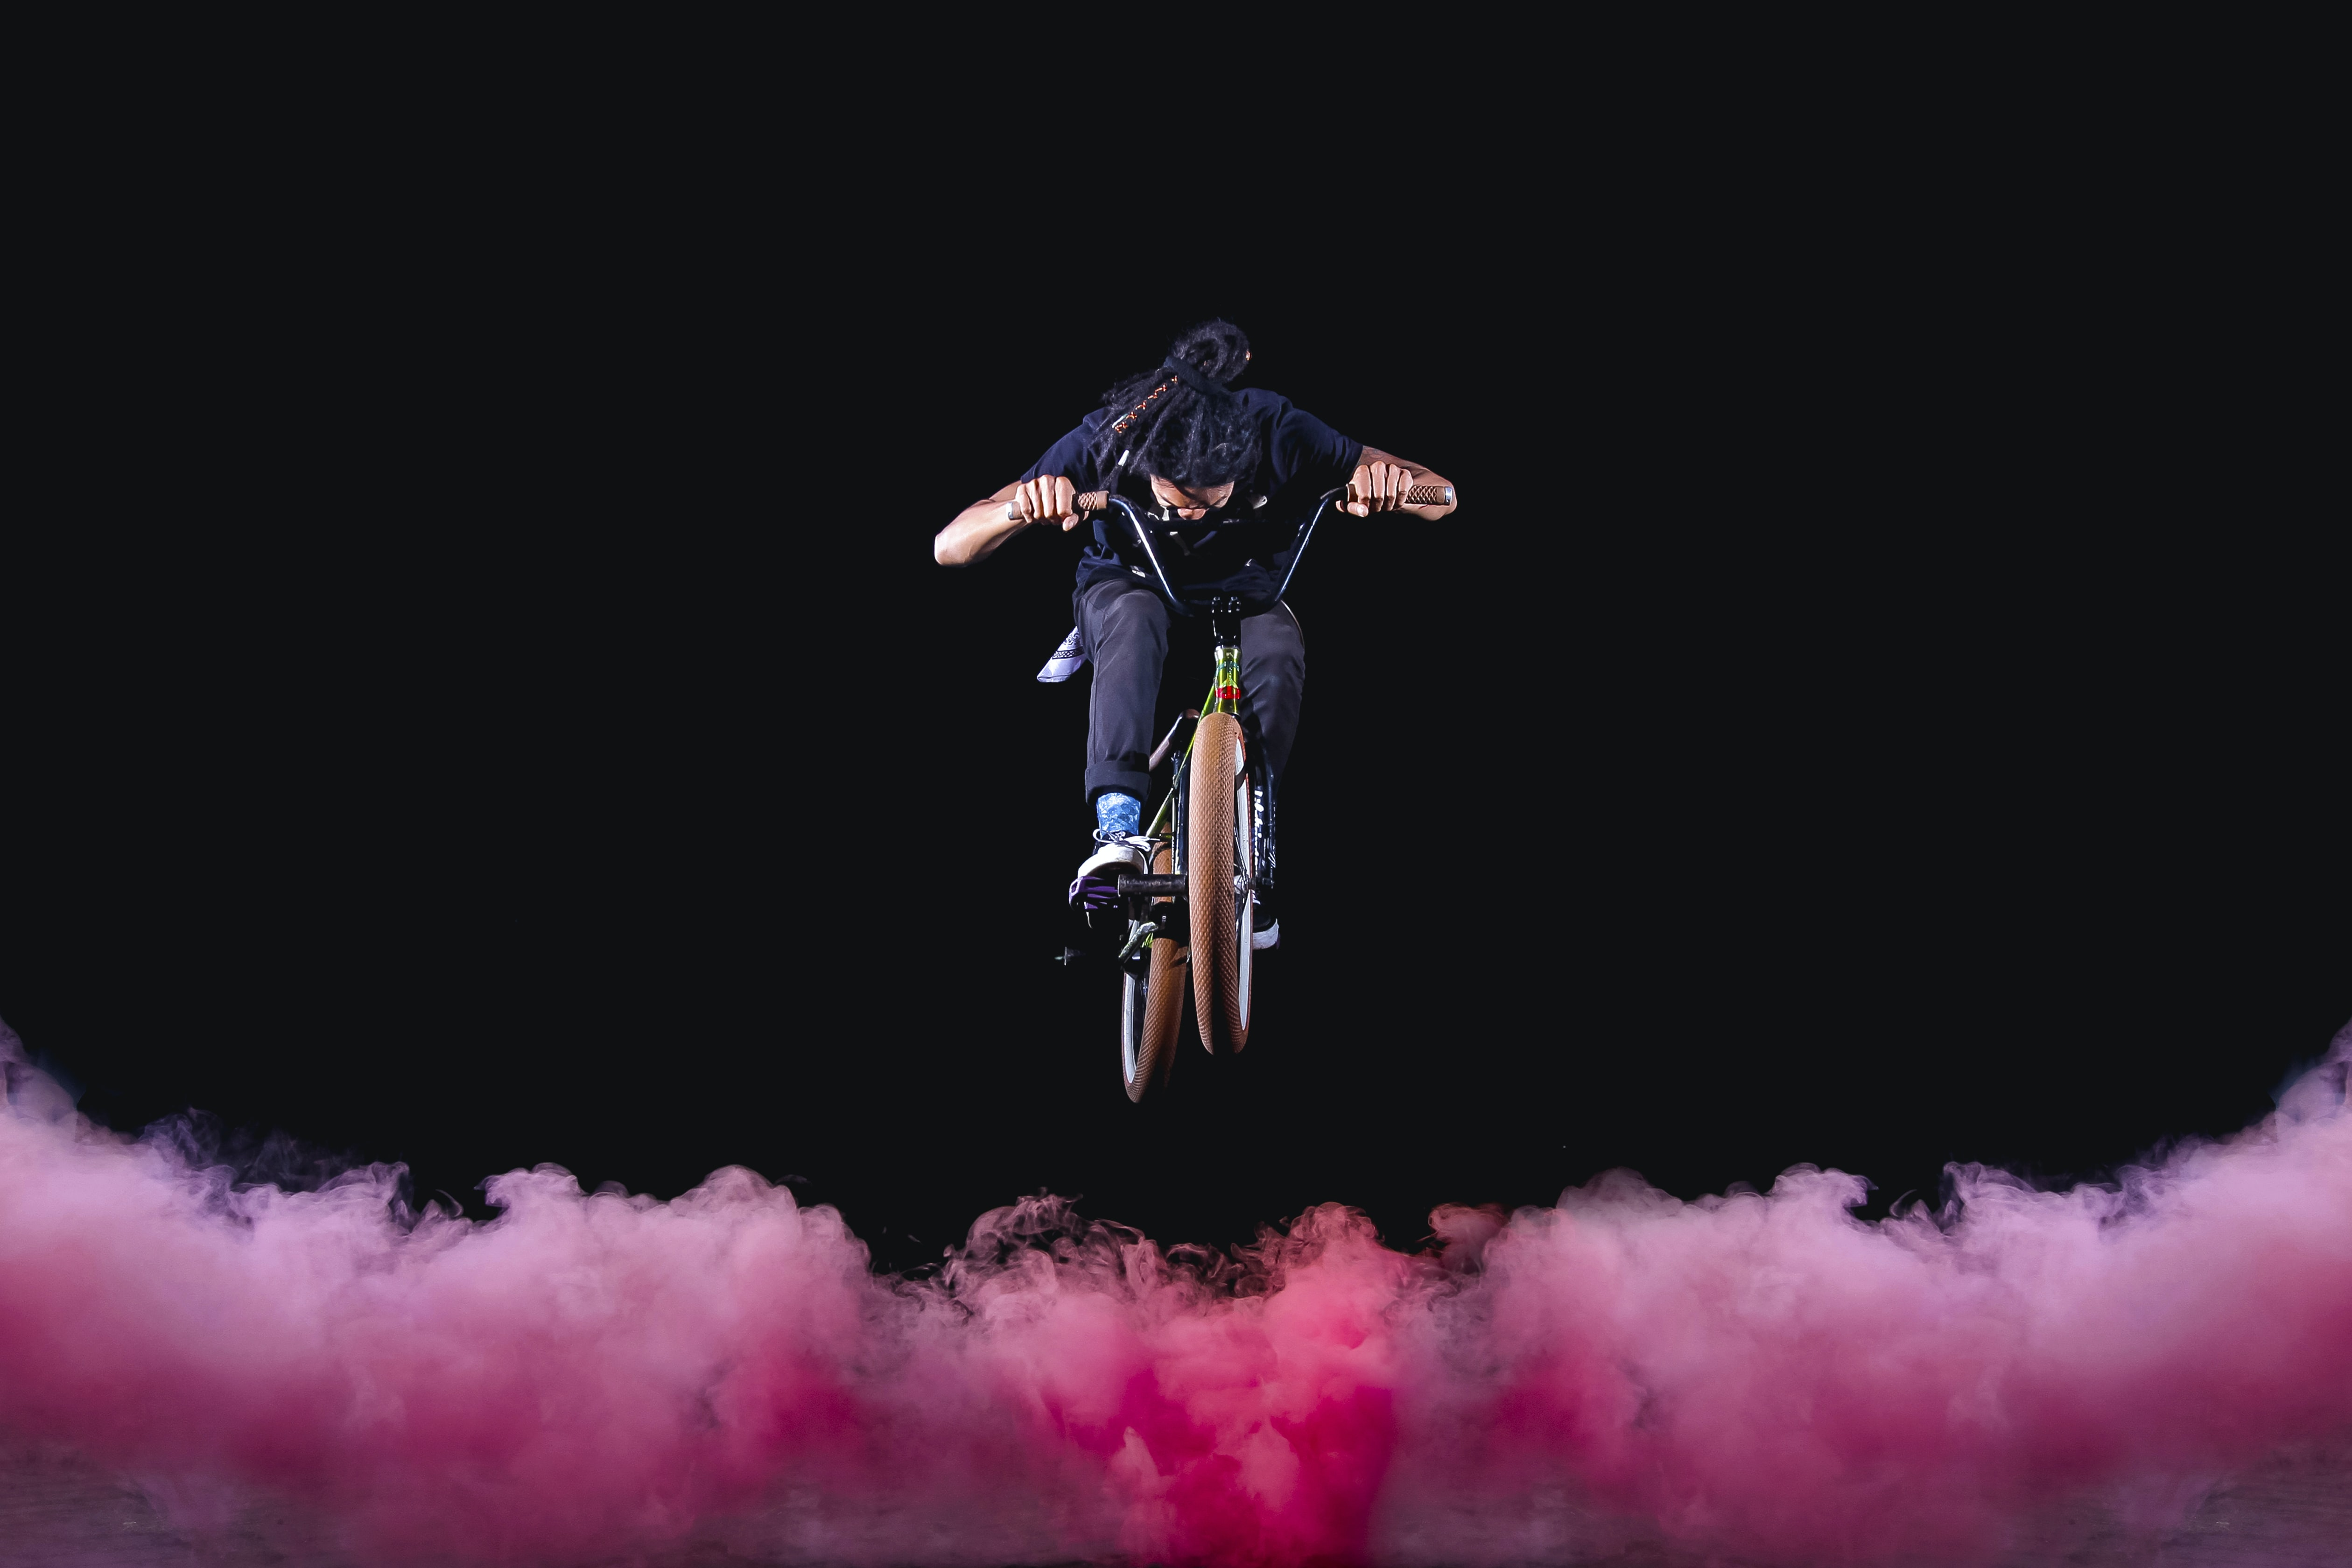 A person jumping their bike over red smoke.